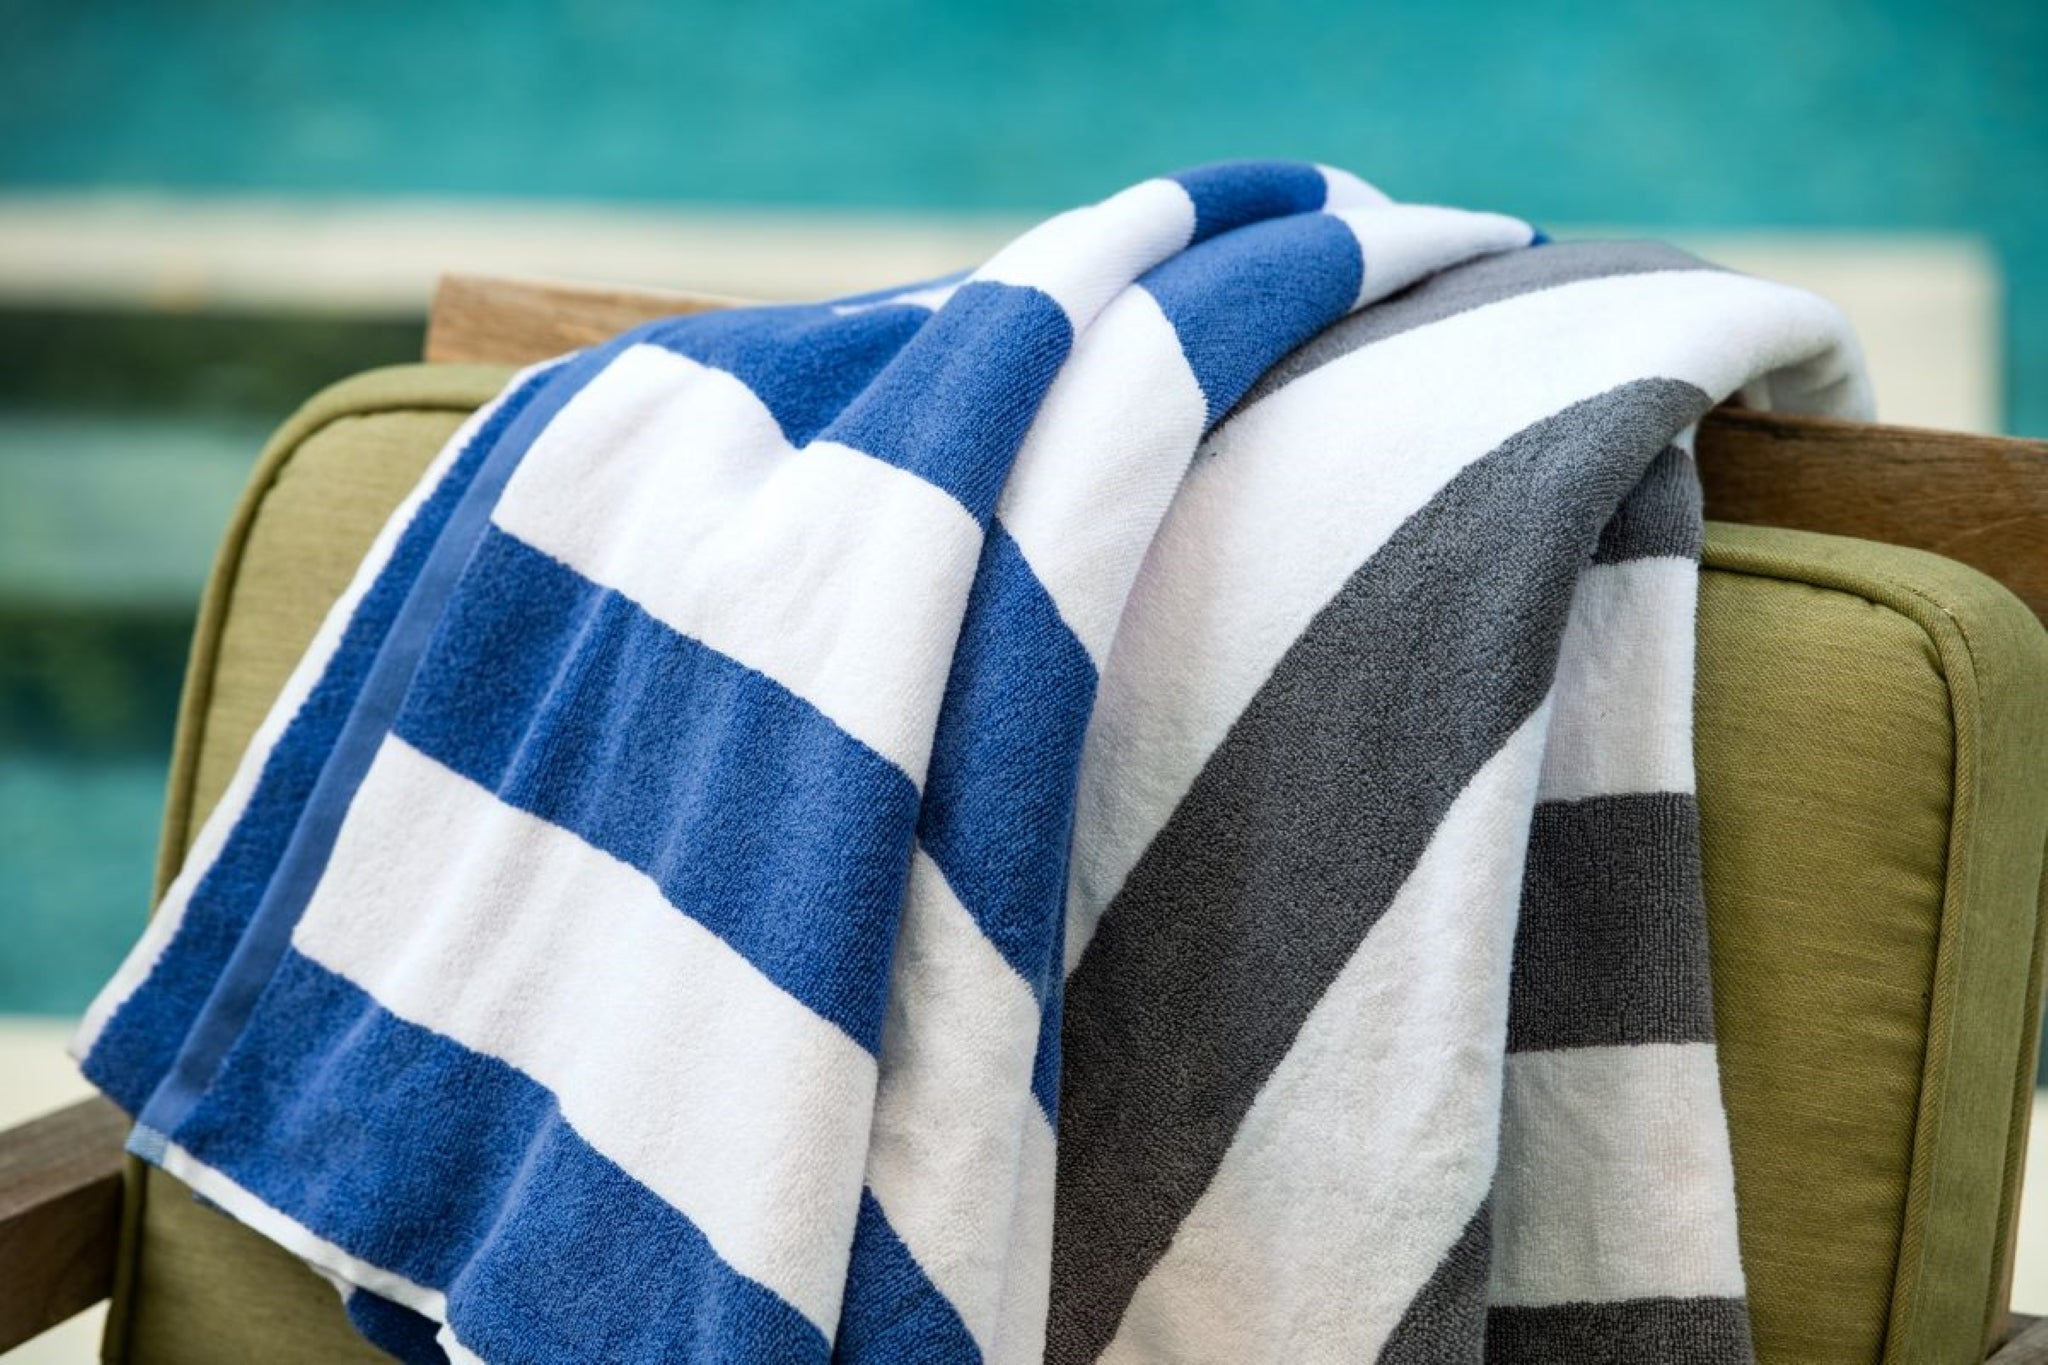 Thomaston Mills American Luxury Breeze Pool Towels laid over a chair.